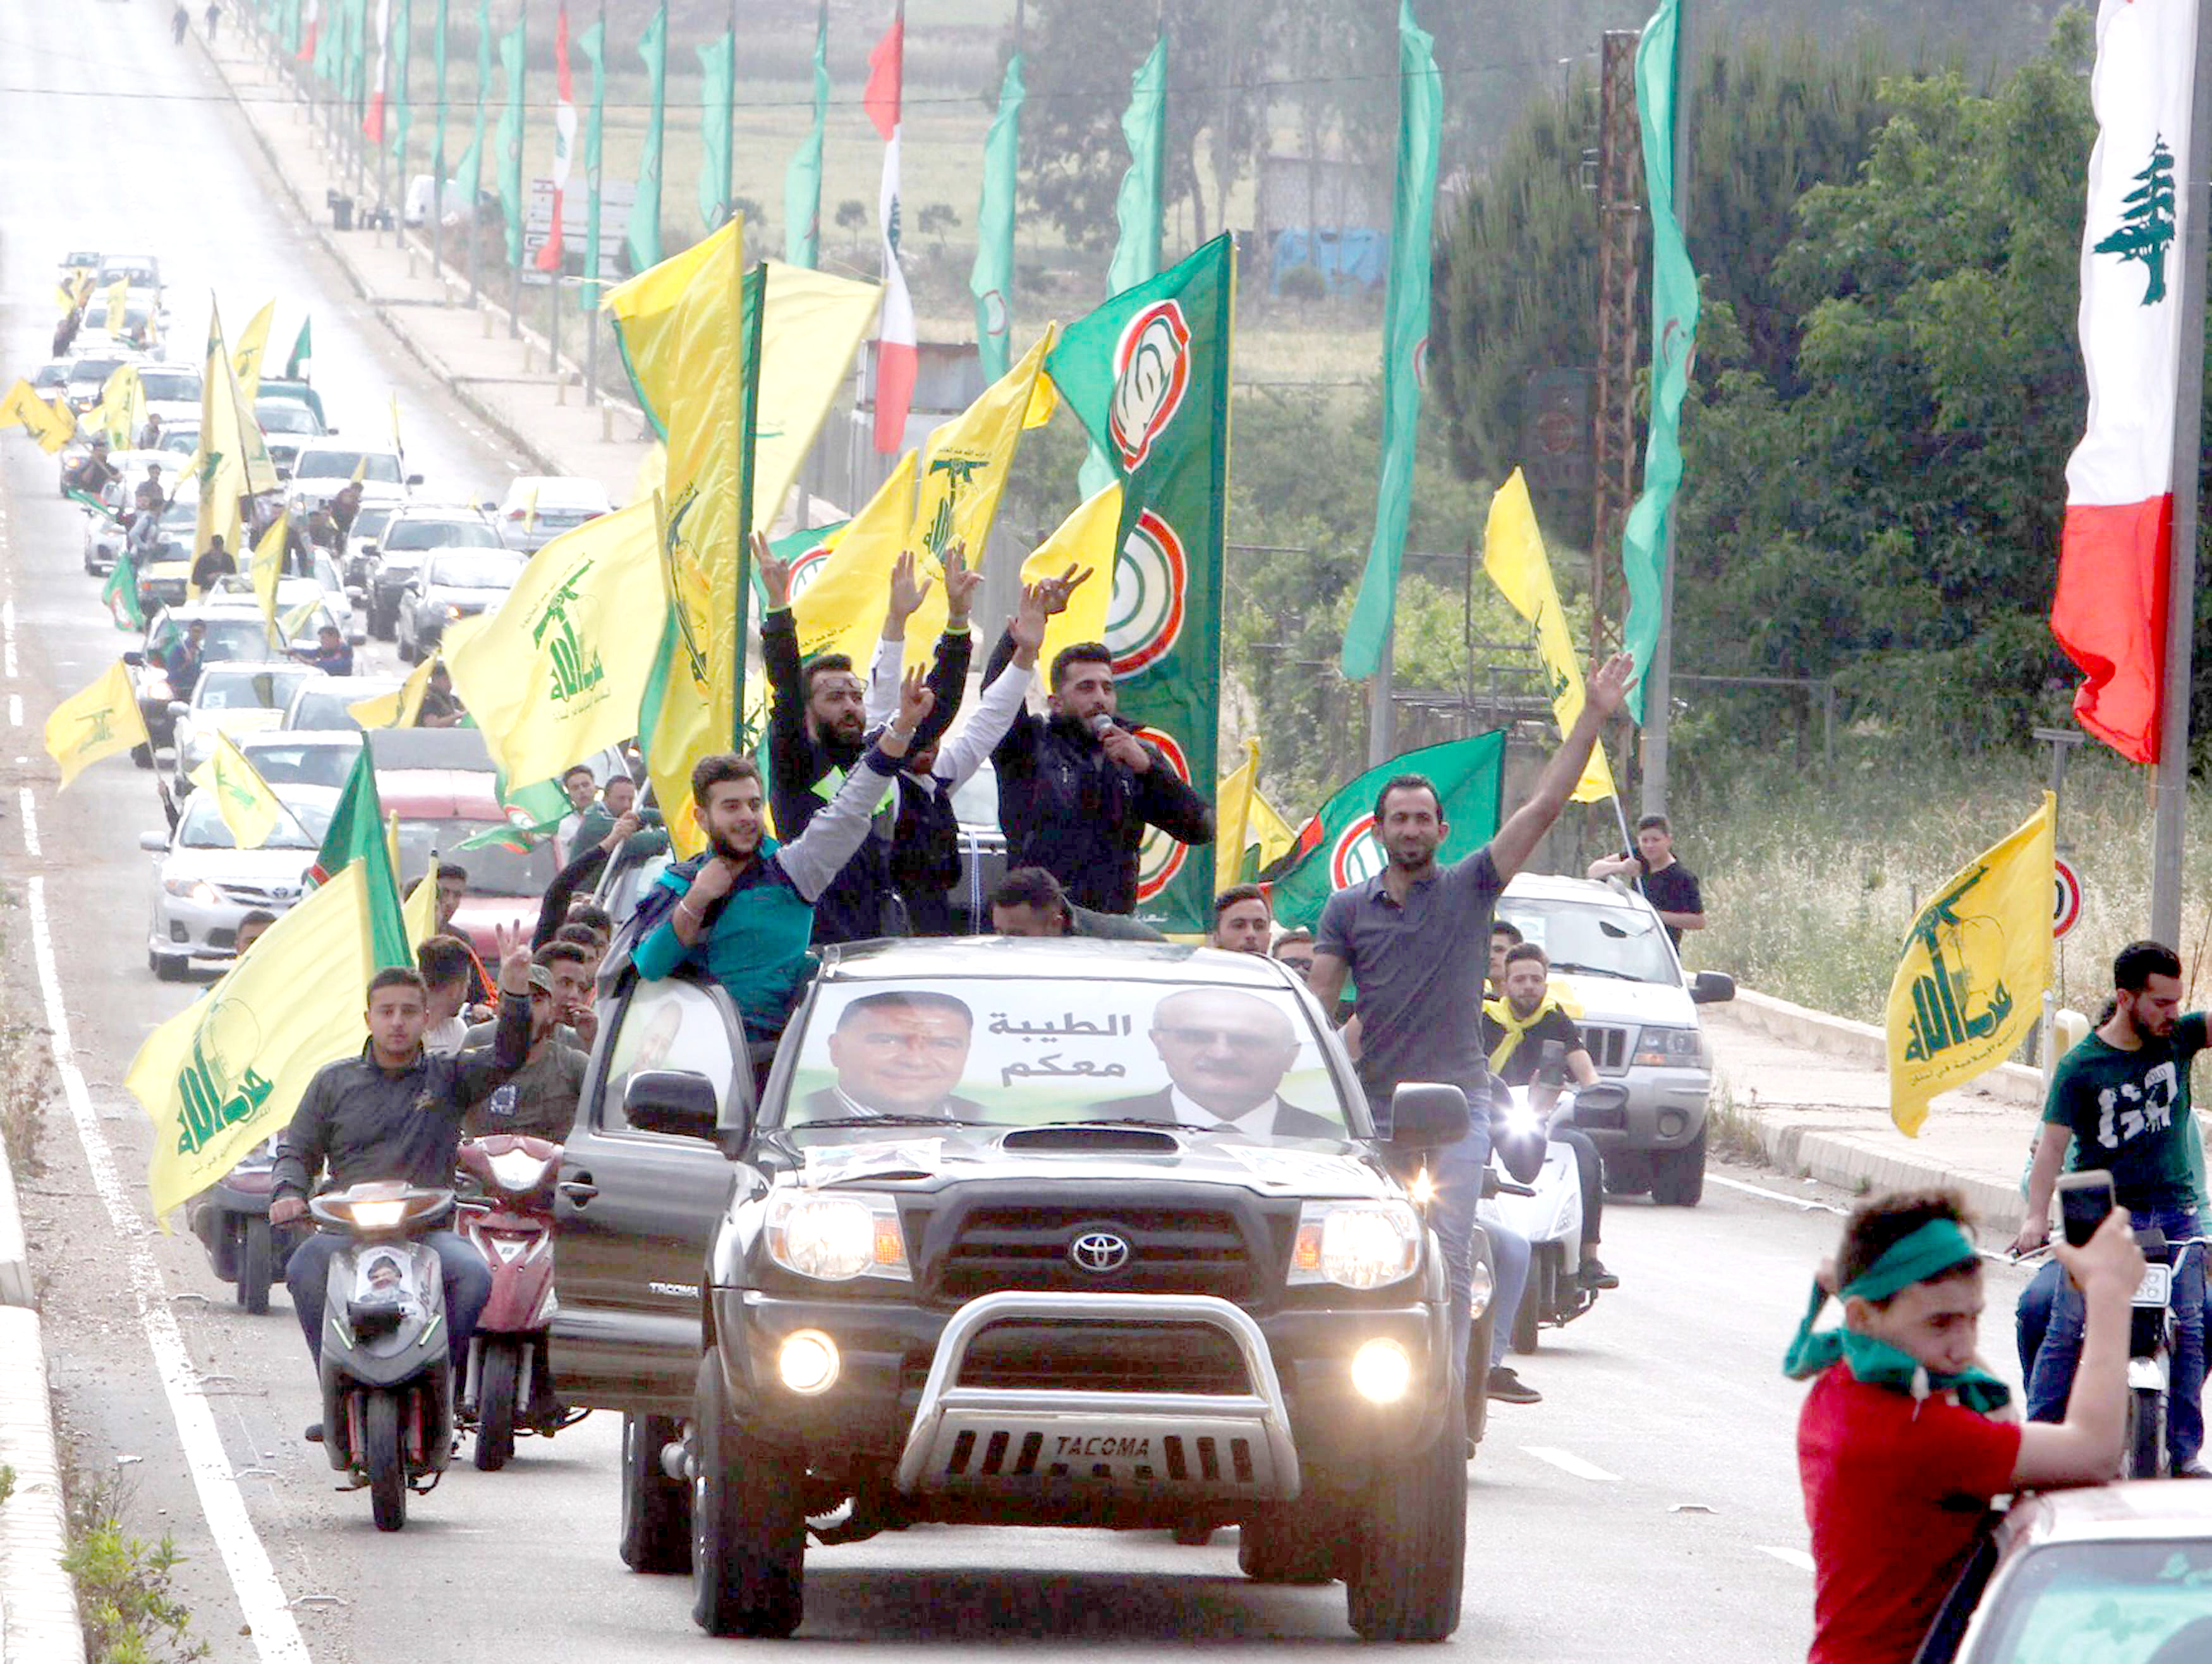 Supporters of Lebanon's Hezbollah and Amal Movement gesture as they ride in a car in Marjayoun, on May 7. (Reuters)